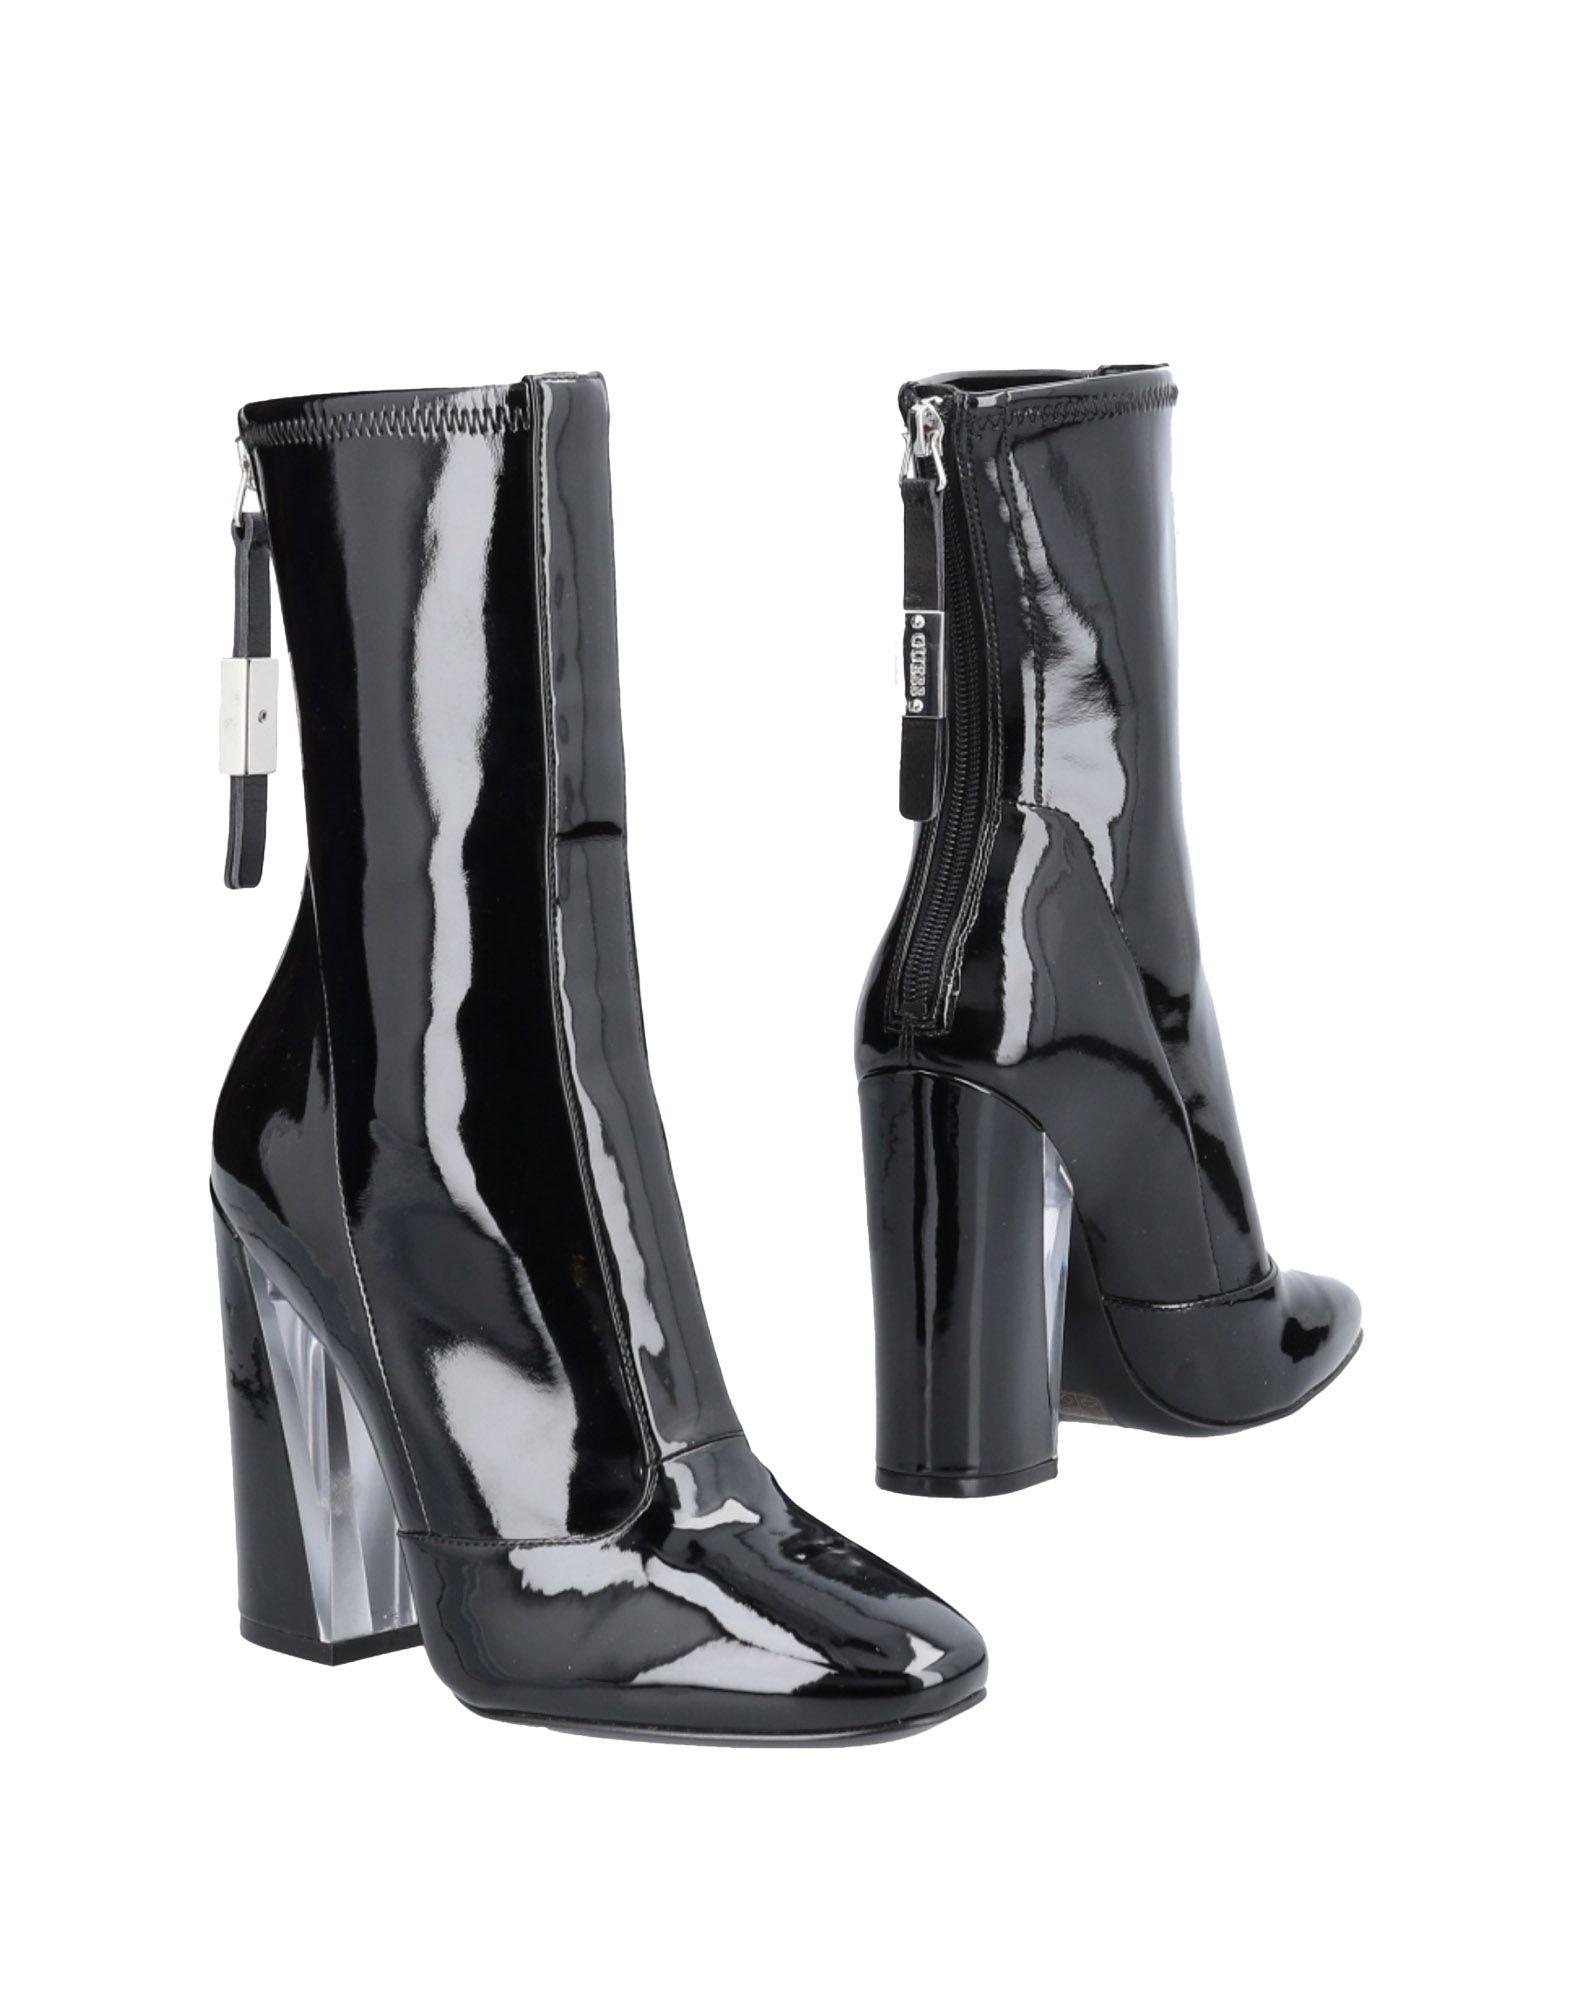 02327f3e108f Guess - Black Ankle Boots - Lyst. View fullscreen